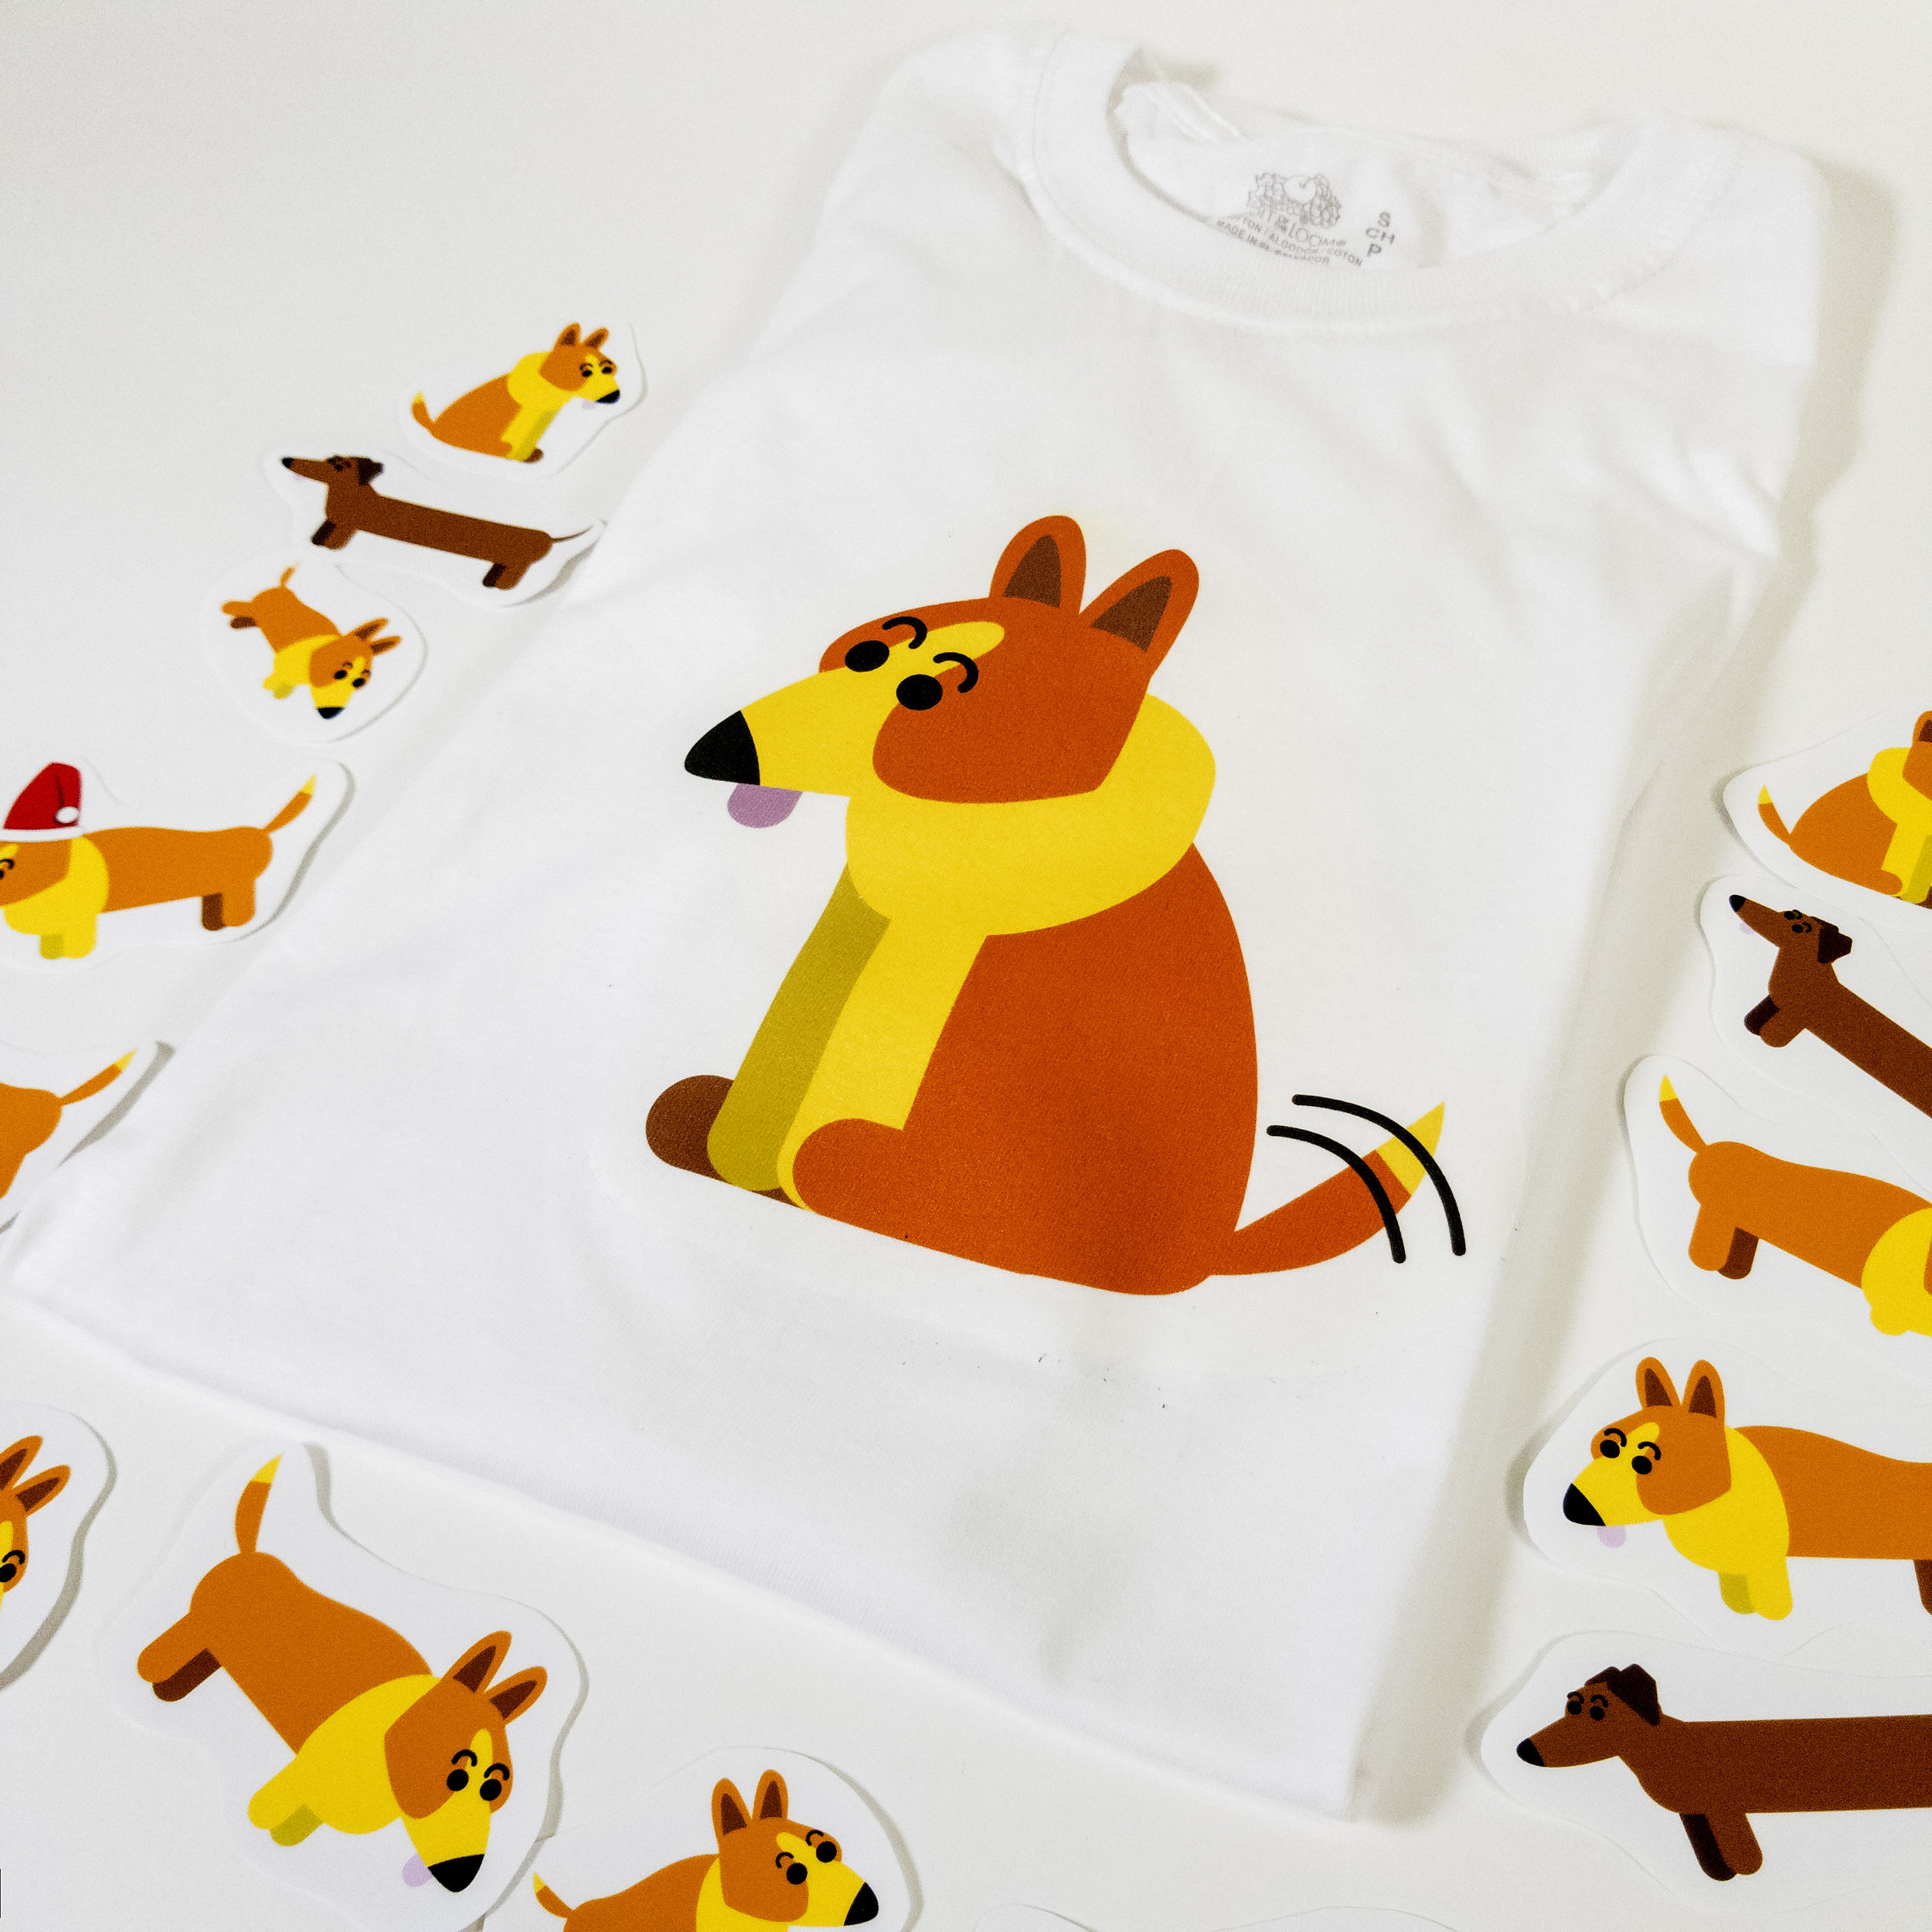 memorabilia - A T-shirt and stickers, the first in a line of The Conscious Corgi-based products.